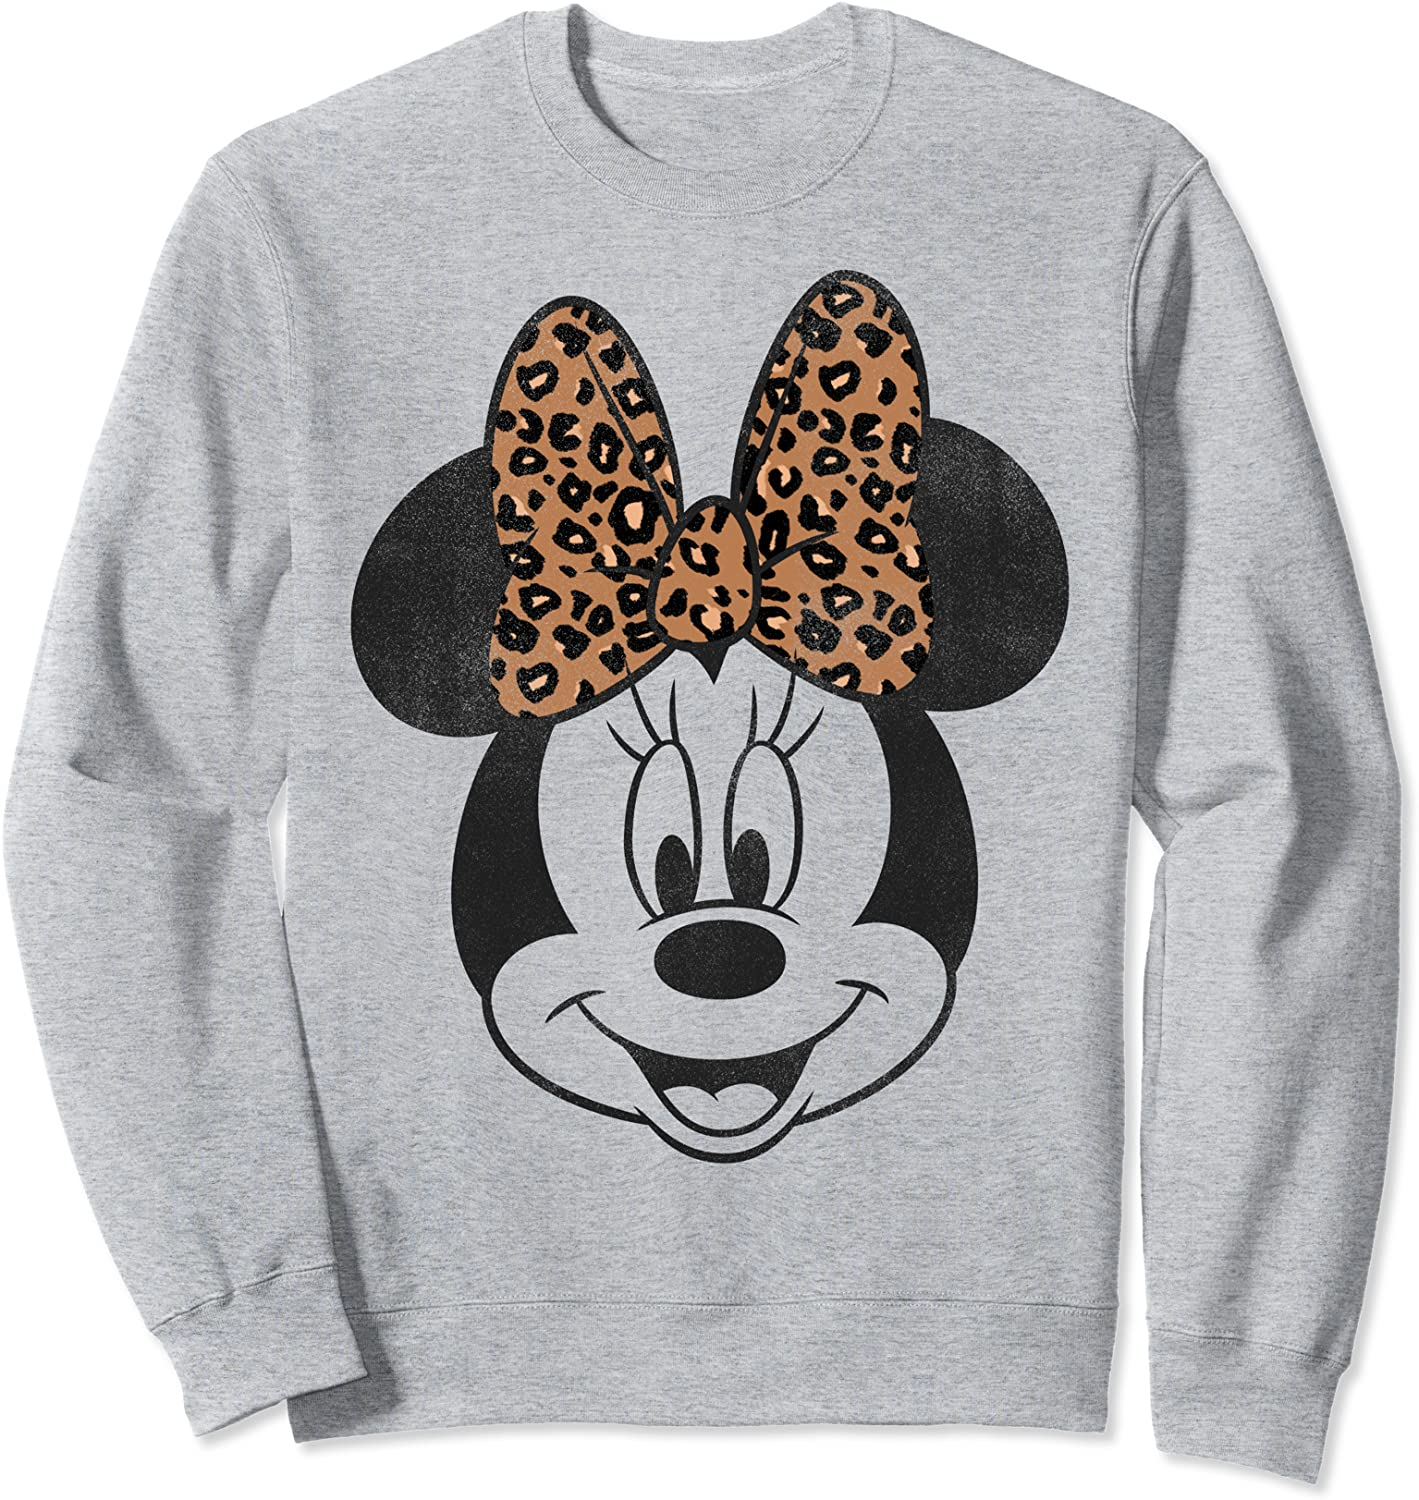 Disney Minnie Mouse Leapord Sweatshirt Dealing full price reduction Bow Portrait Discount is also underway Print